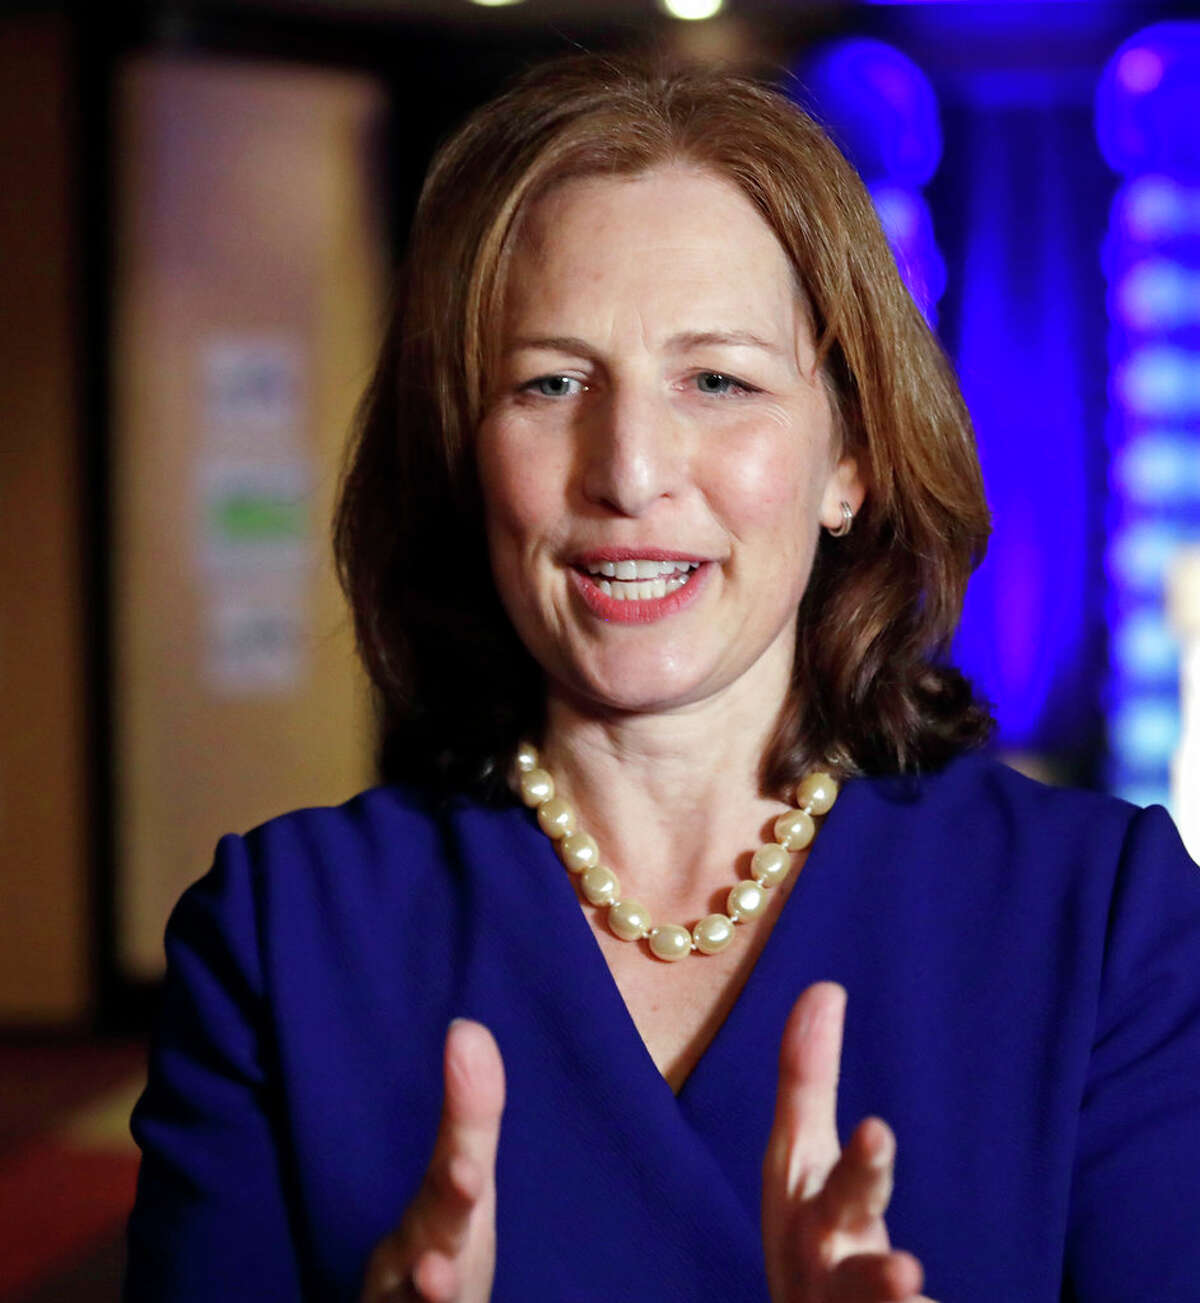 """CRookie U.S. Rep. Kim Schrier, D-Wash., on withdrawal from Paris Climate Accord: """"This move by the Administration is short sighted and irresponsible."""""""